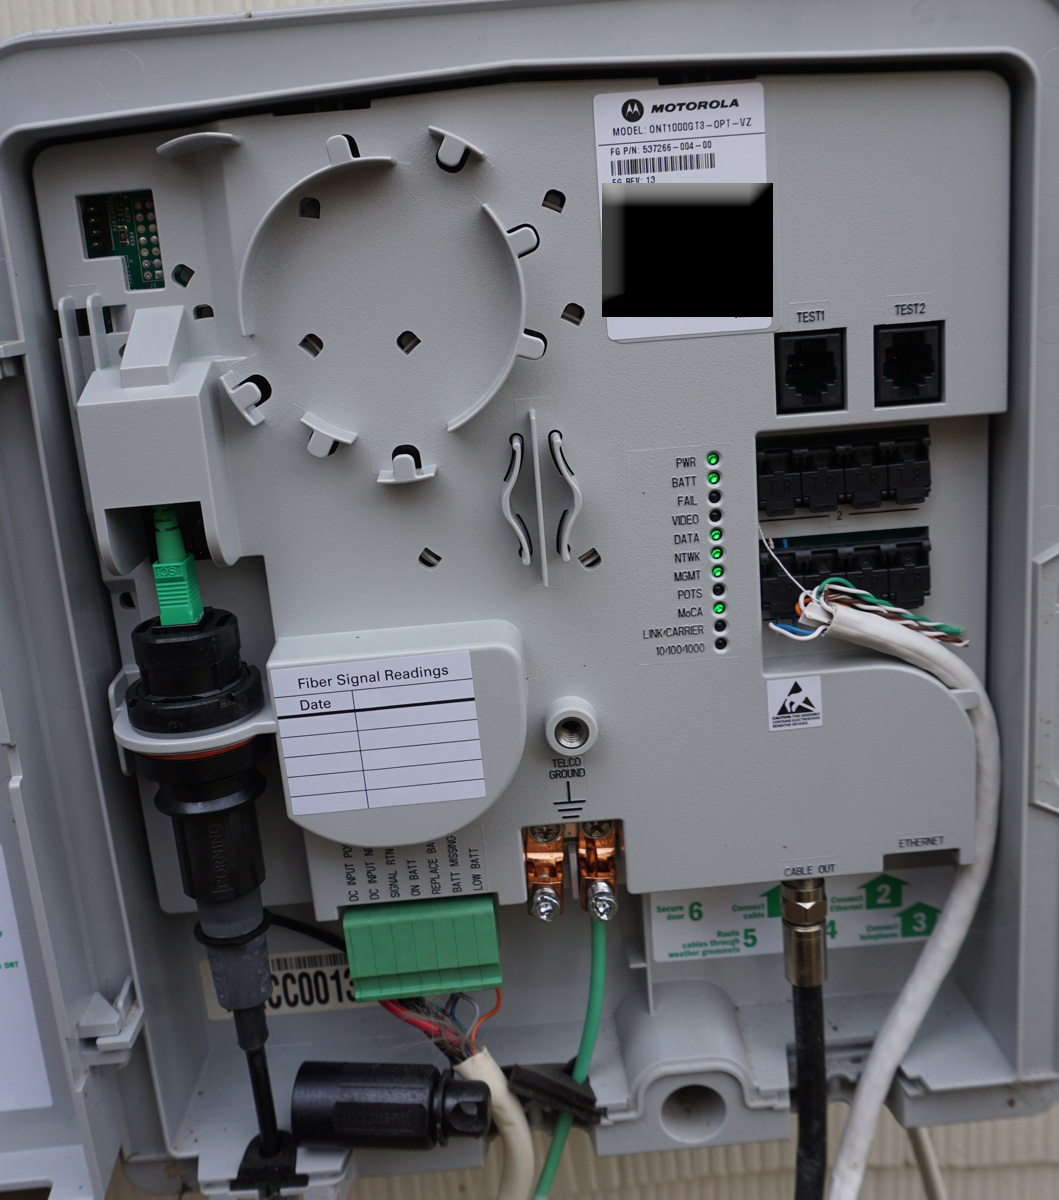 fios telephone wiring diagram boilers and manuals outside for tv verizon community